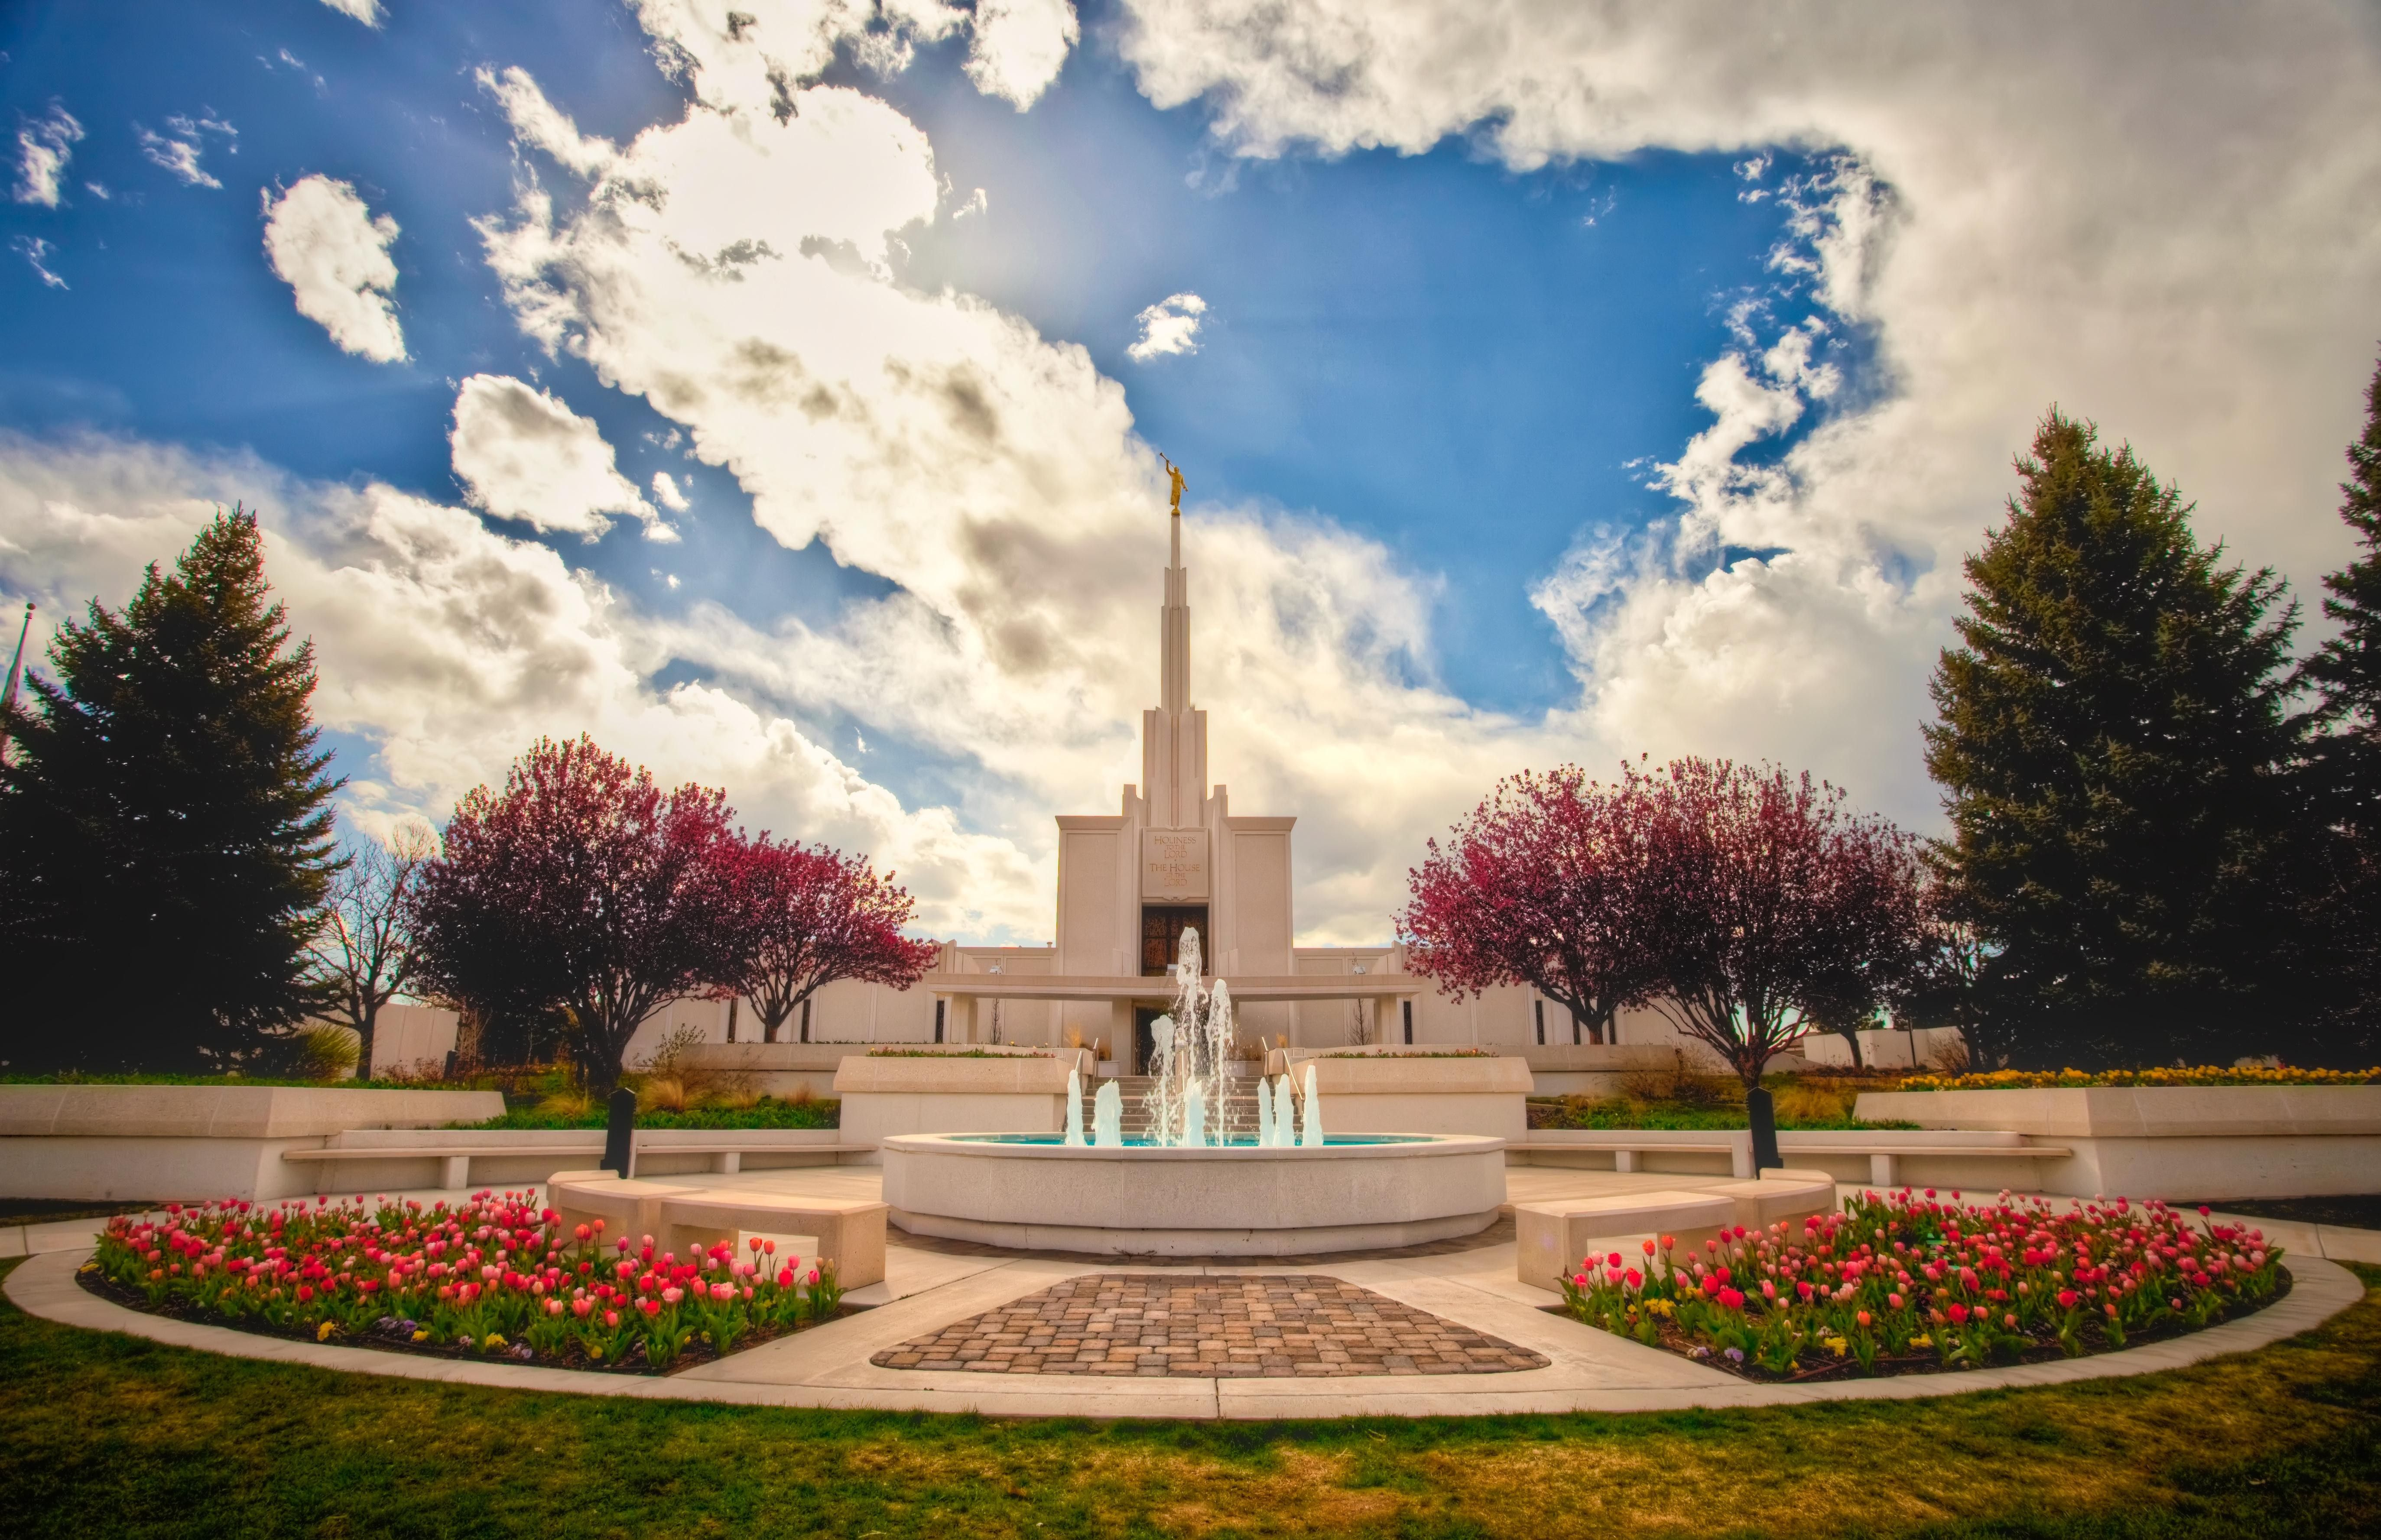 A landscape view of the Denver Colorado Temple and temple grounds.